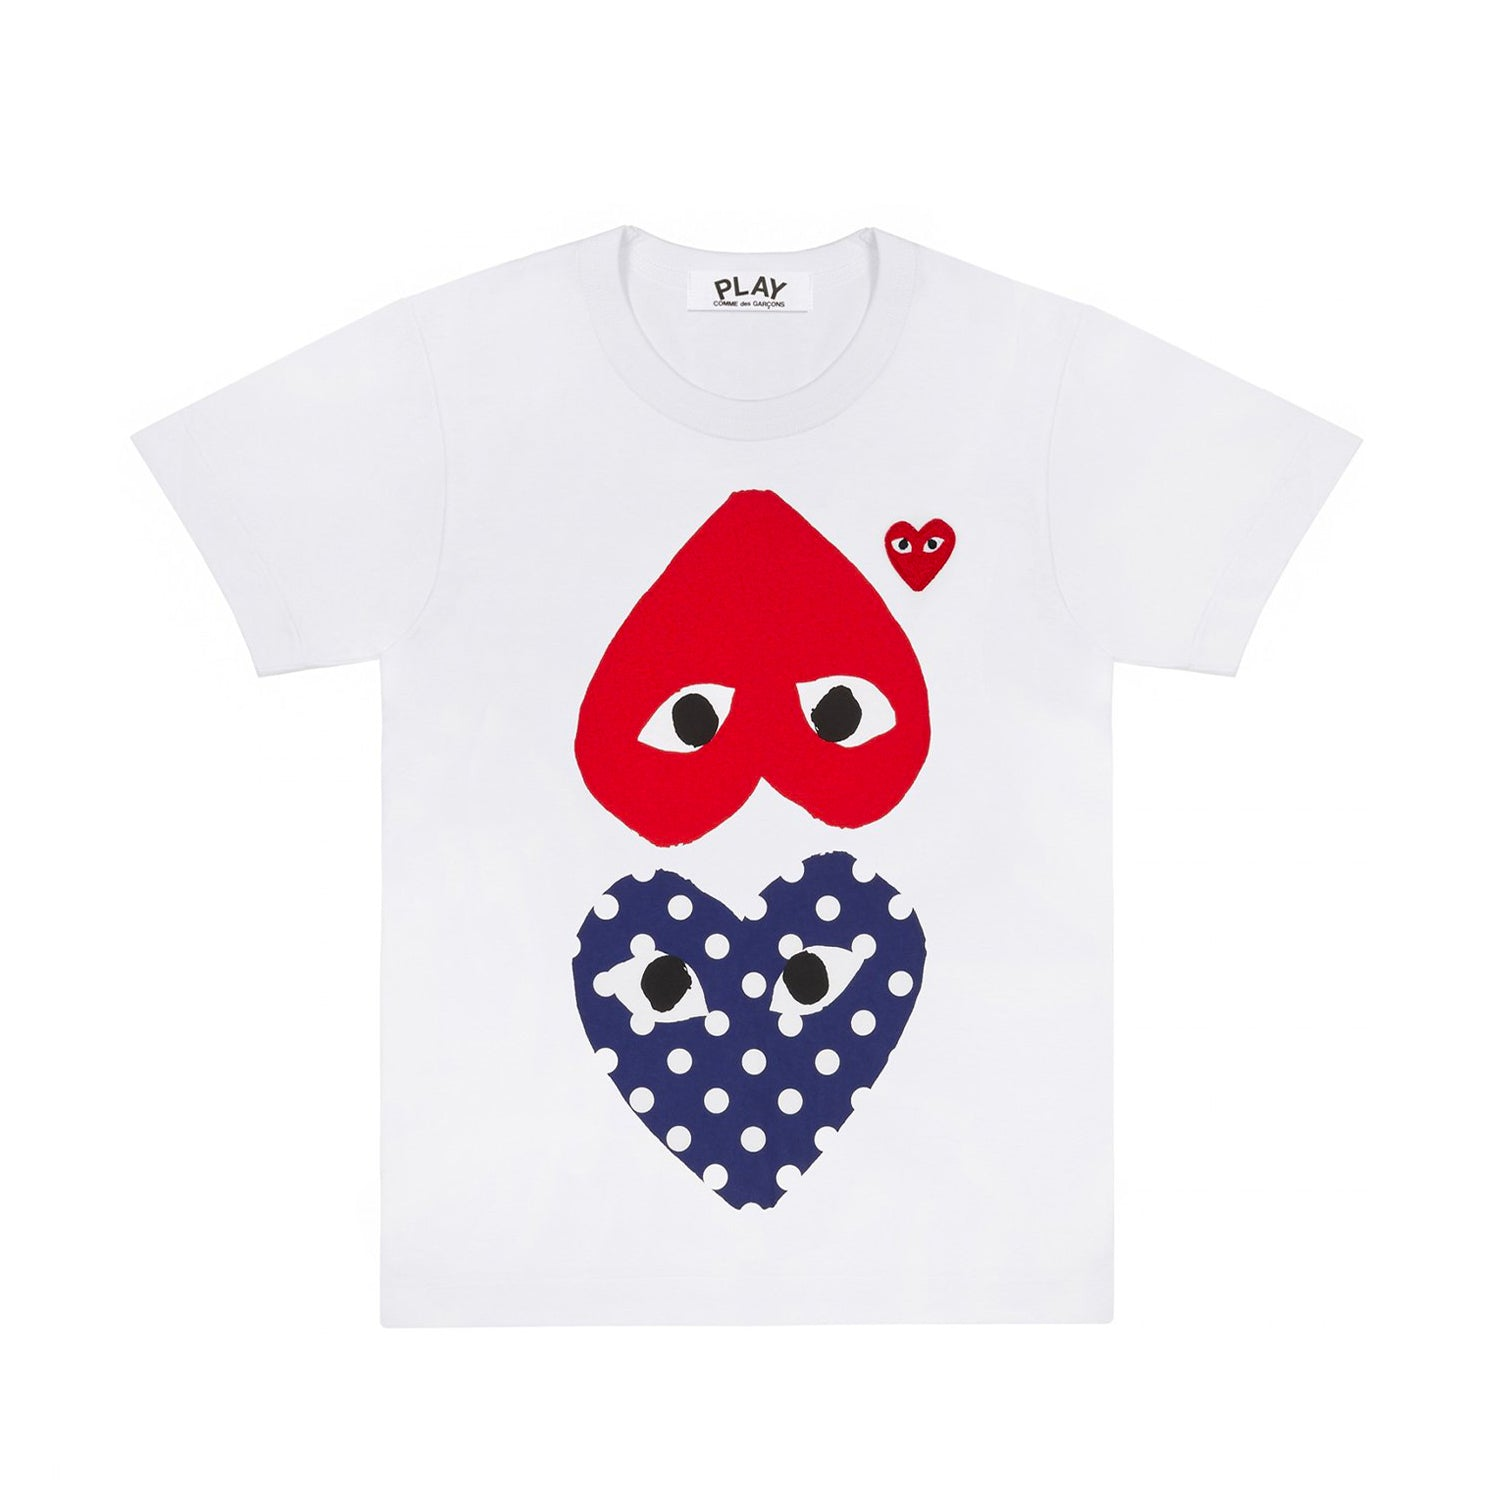 POLKA DOT HEART AND RED HEART T-SHIRT